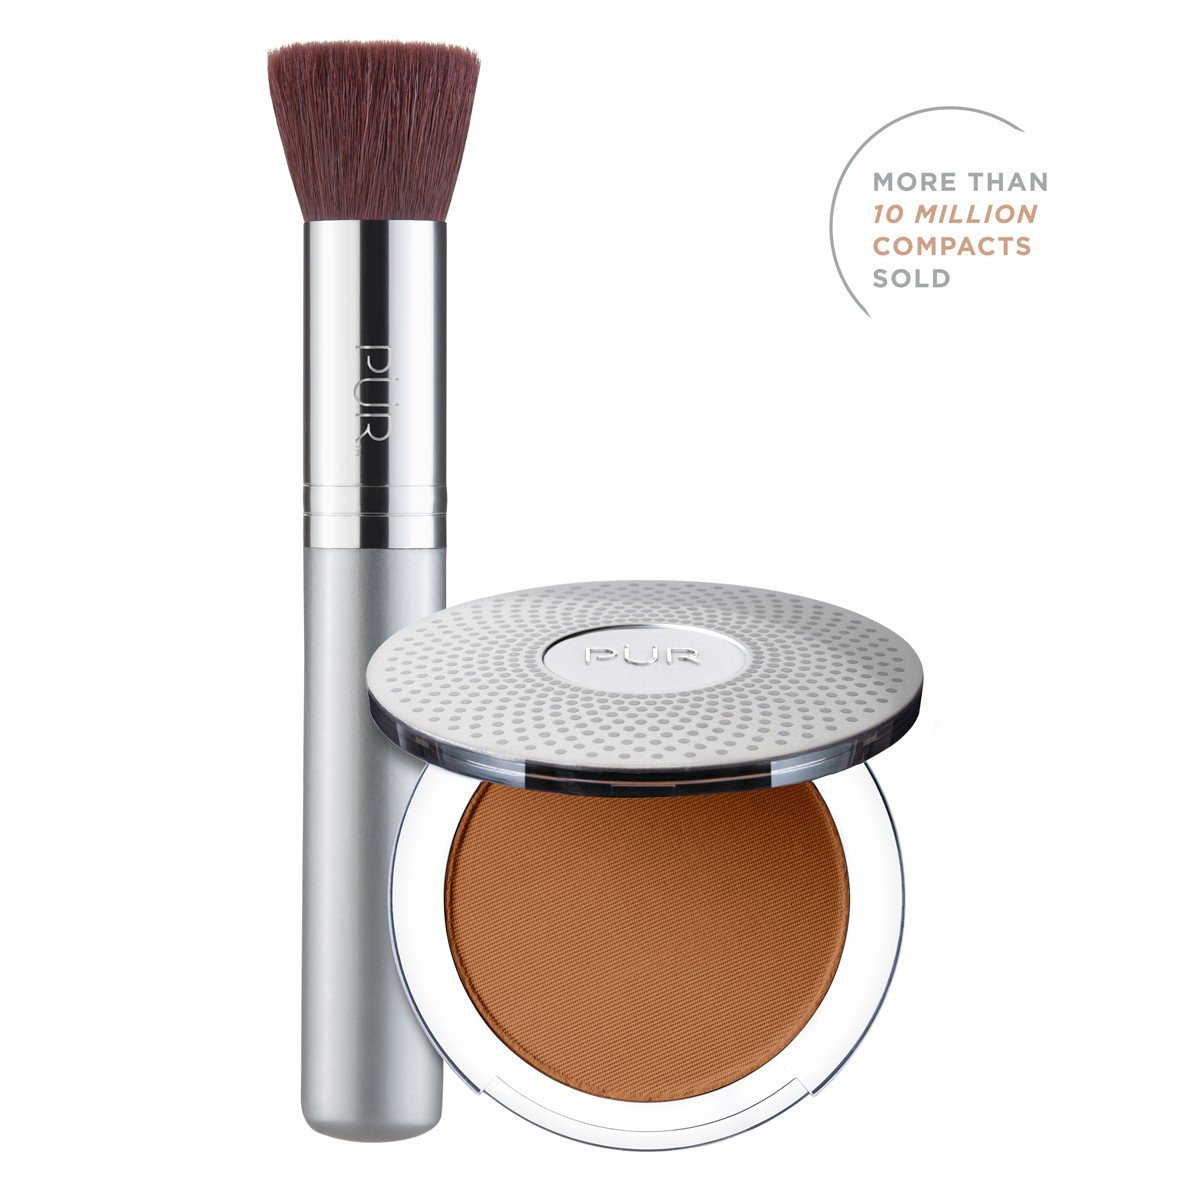 TRY PÜR! 4-in-1 Pressed Mineral Makeup and Brush Kit in Deeper